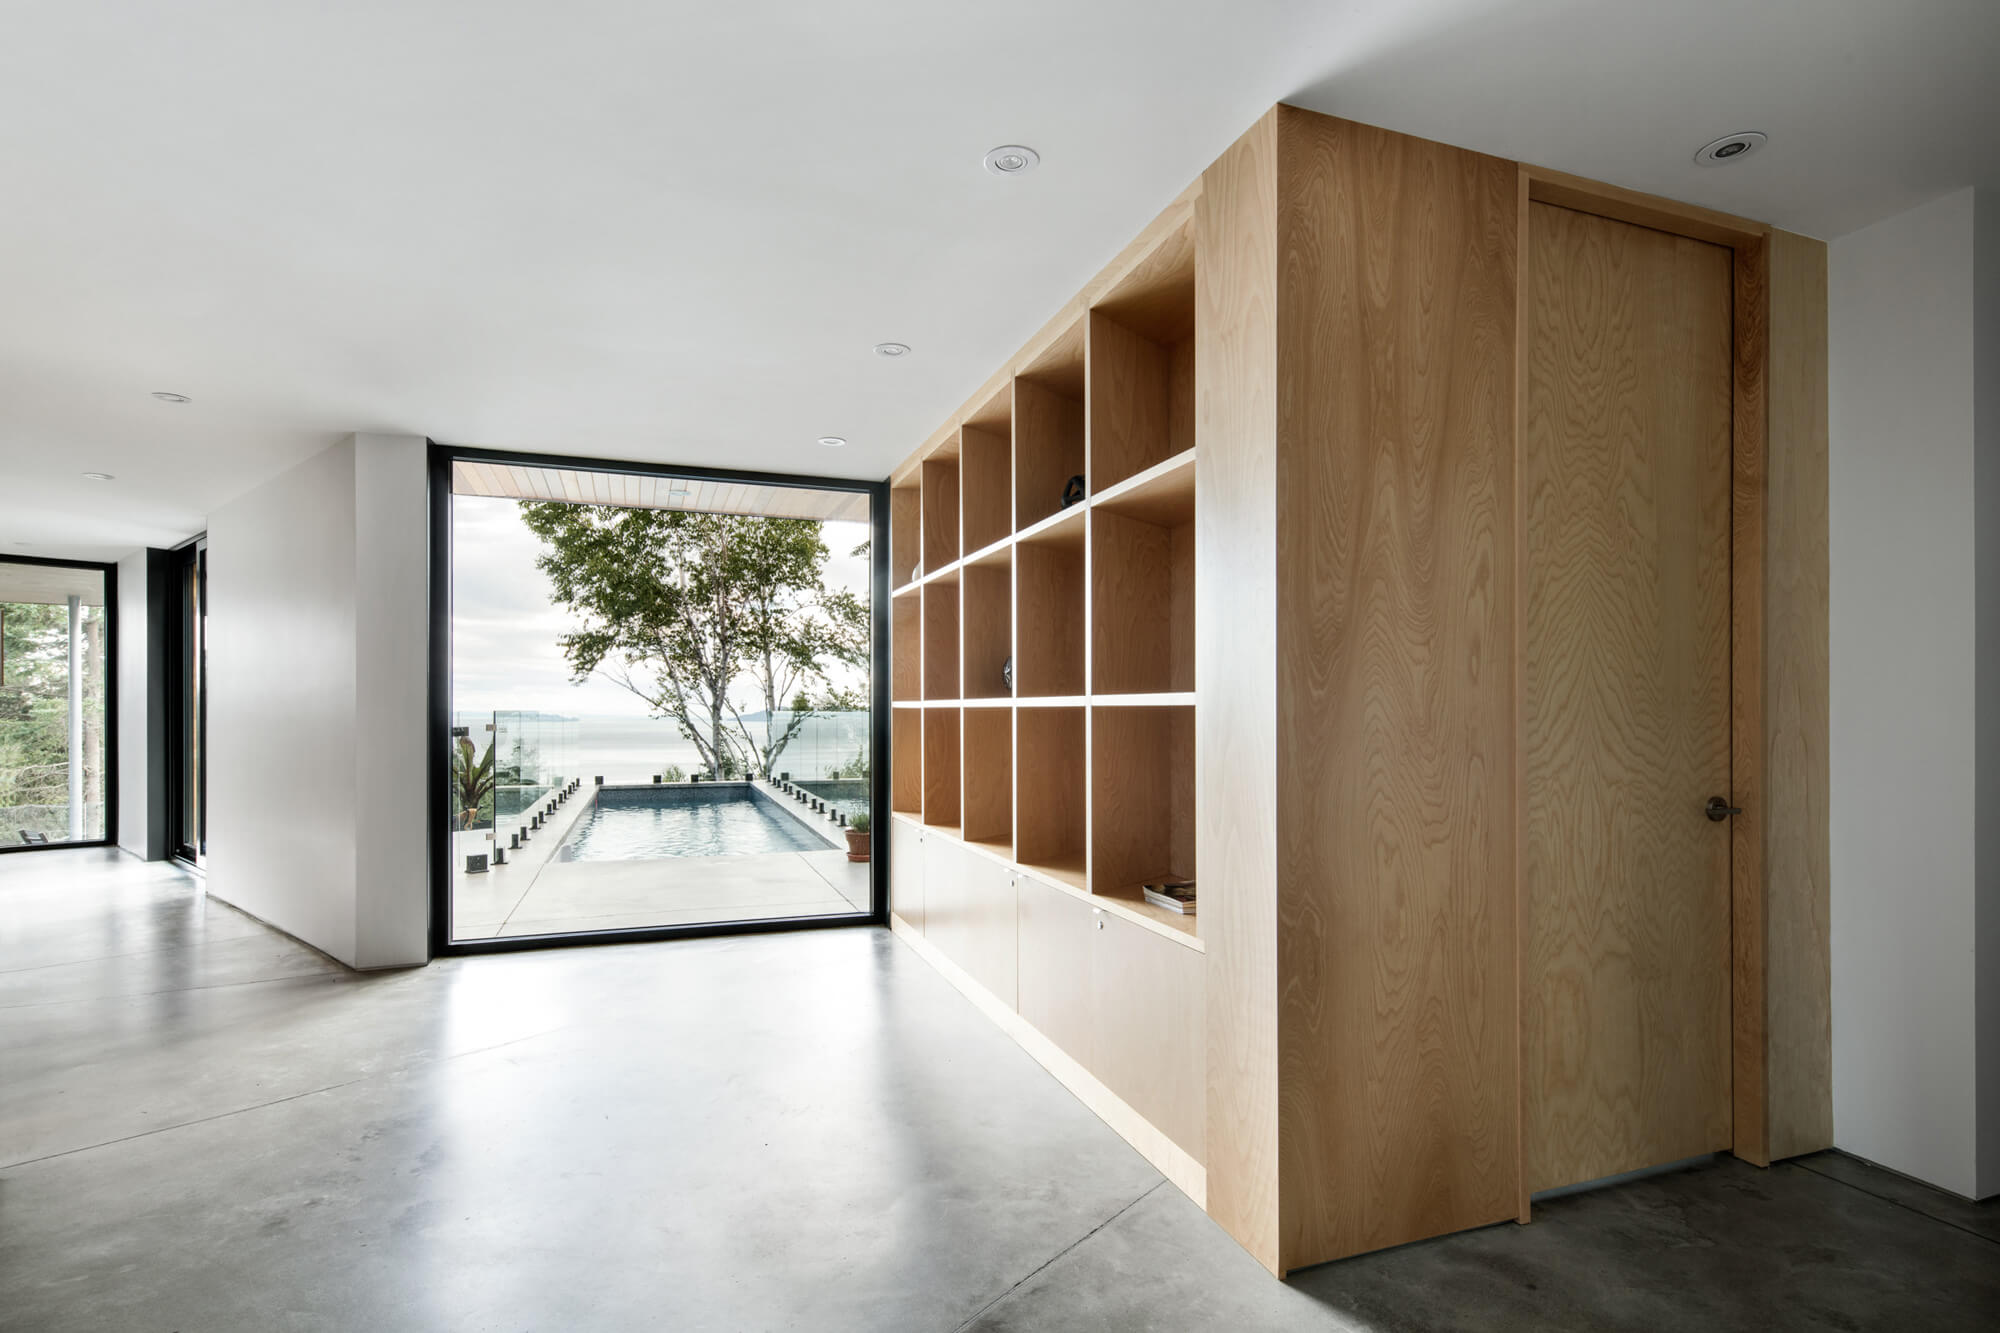 370_BOURGEOIS-LECHASSEUR-ARCHITECTES_RESIDENCE-ALTAIR_07